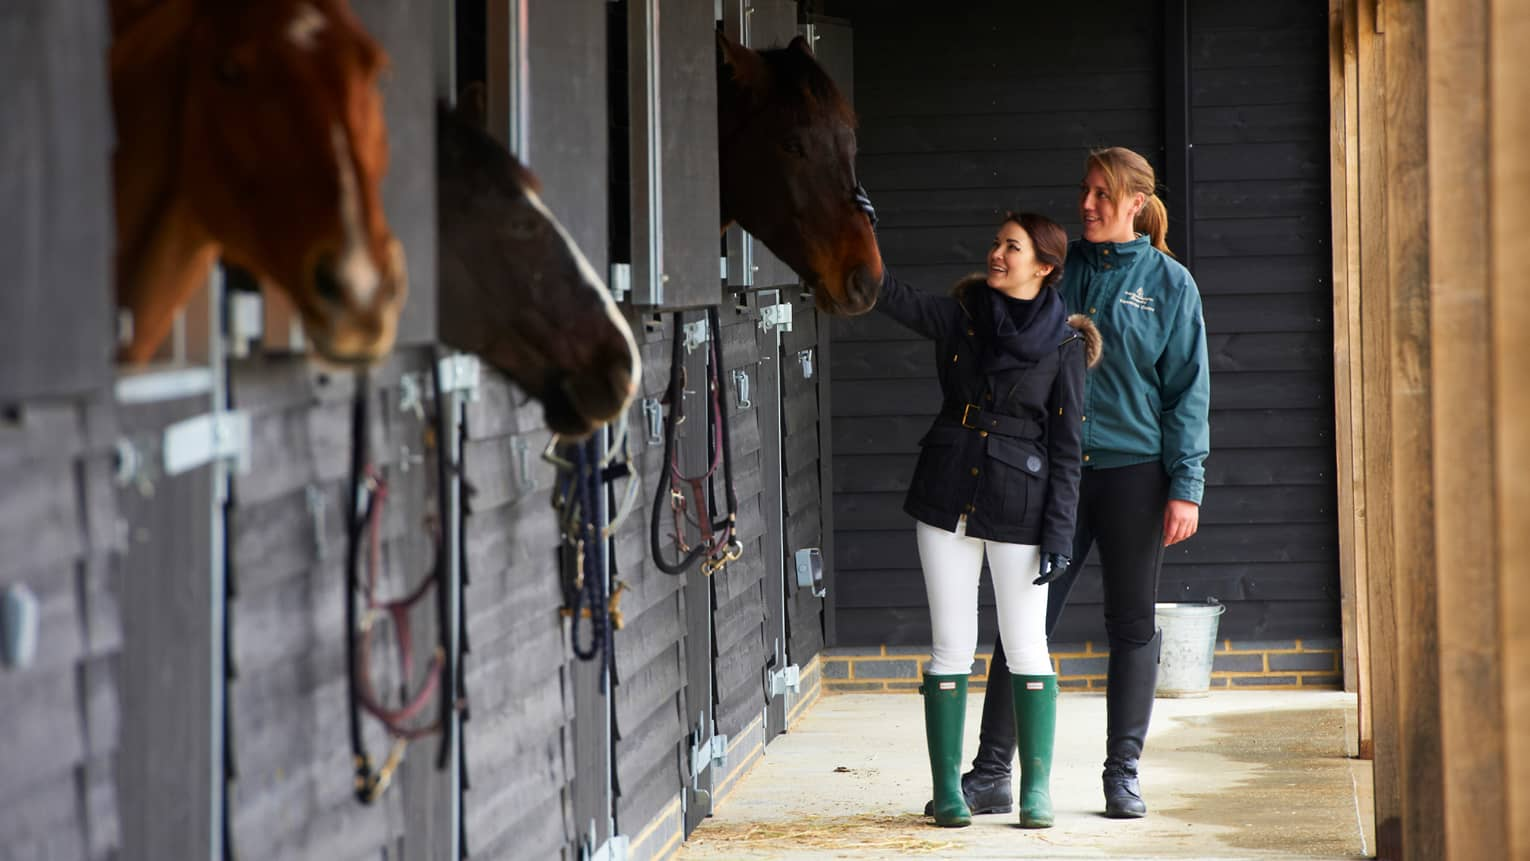 Two people visit with horses in stalls at The Dogmersfield Park Estate